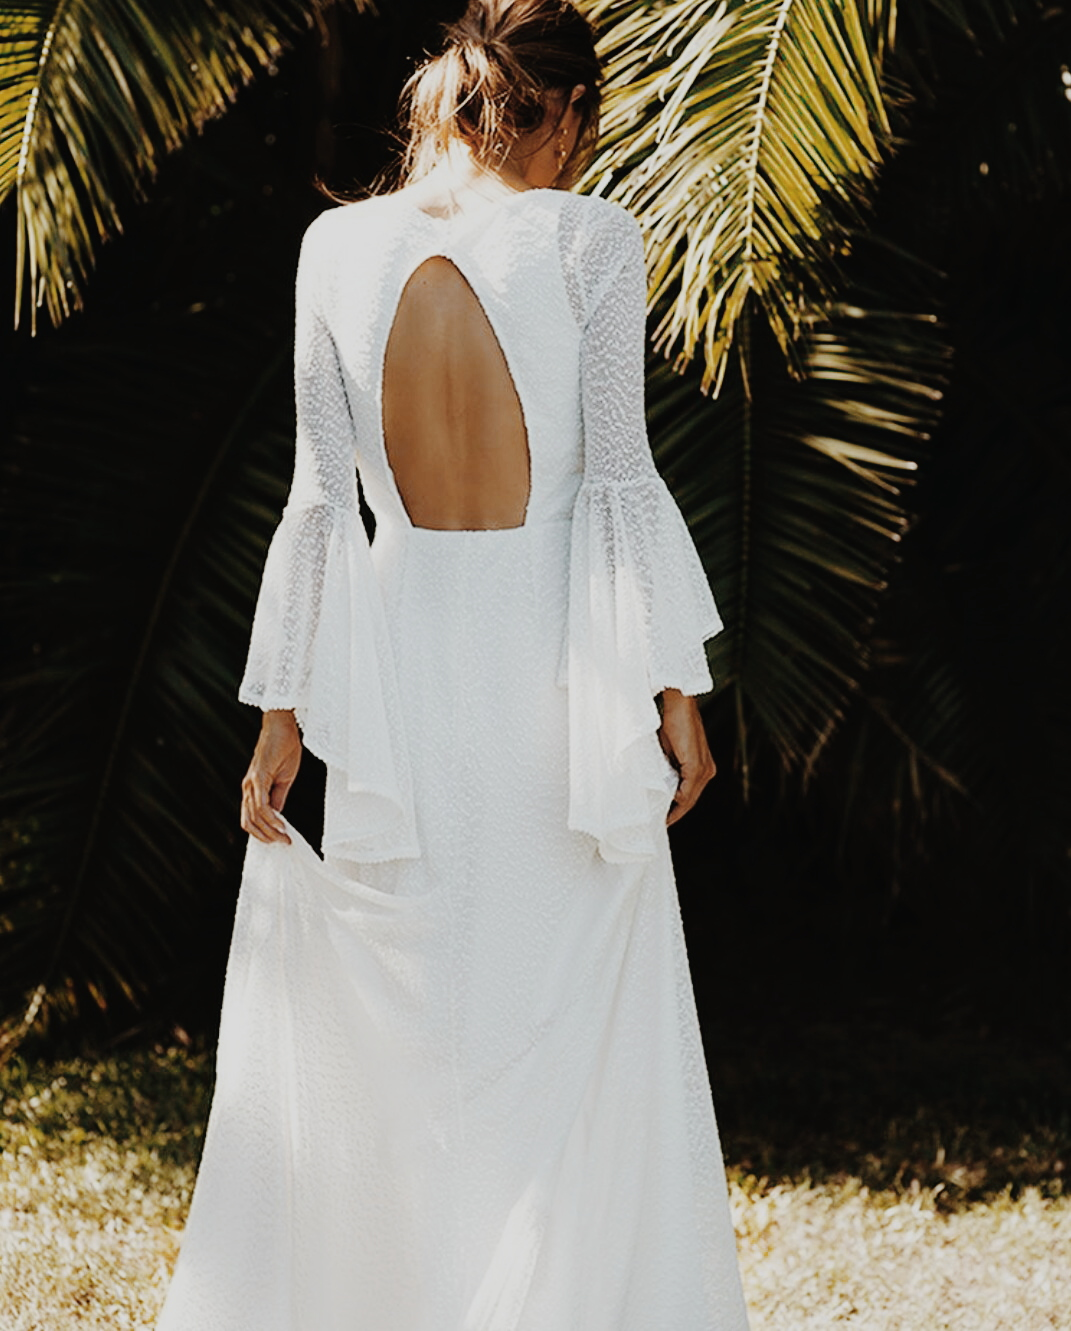 back less gown low back gown open baack gown wedding gown